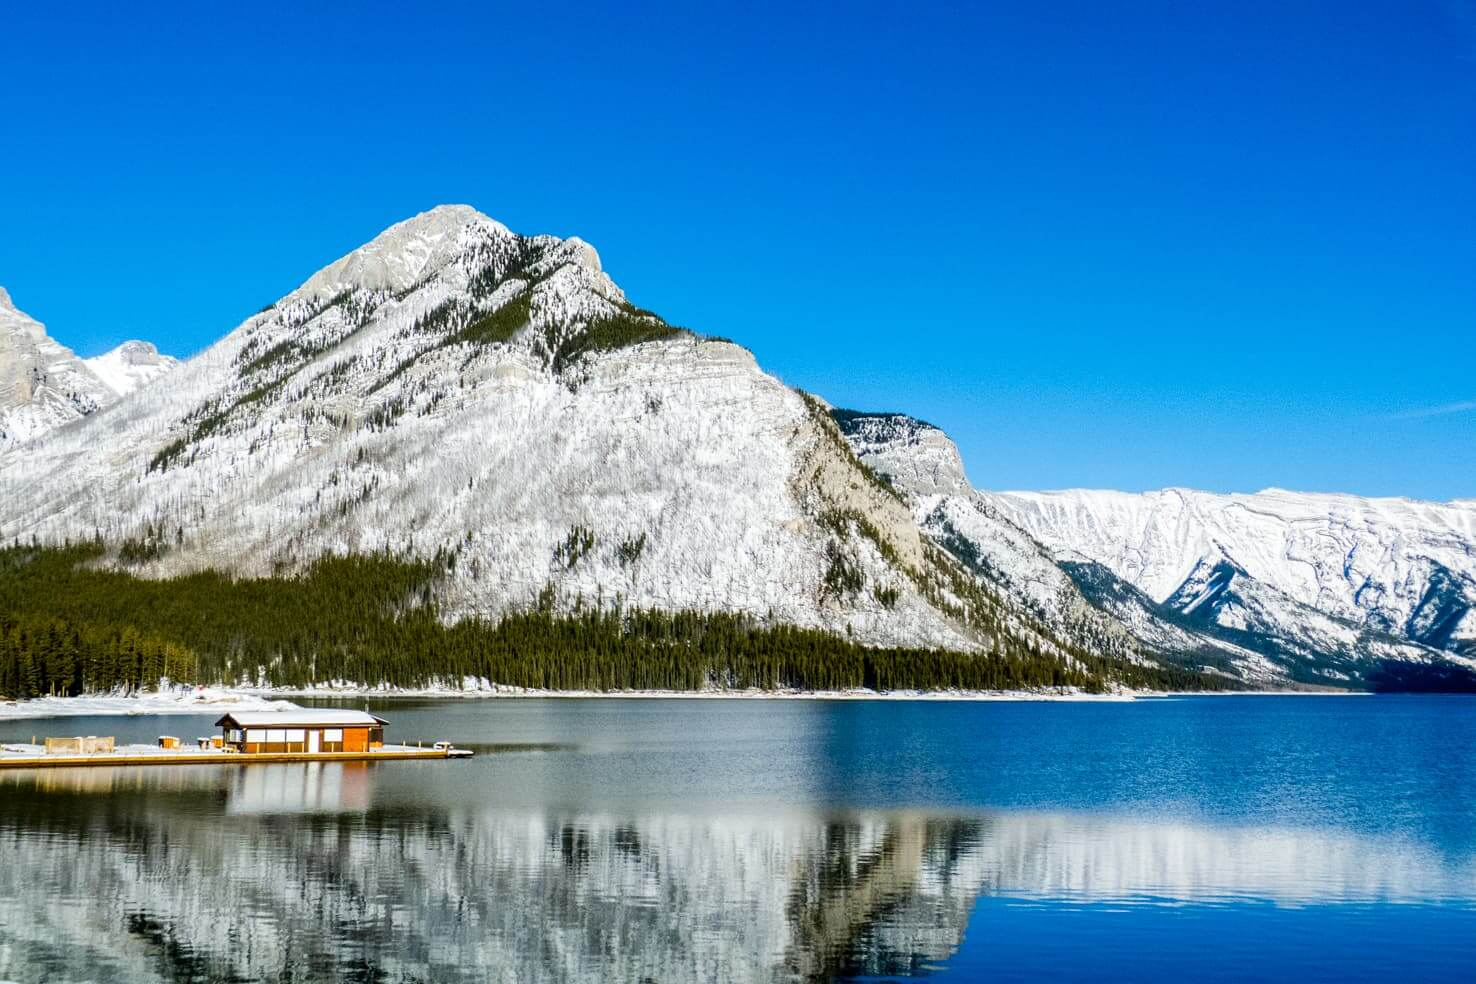 100 best things to do in Banff National Park, Canada - Go boating across Lake Minnewanka